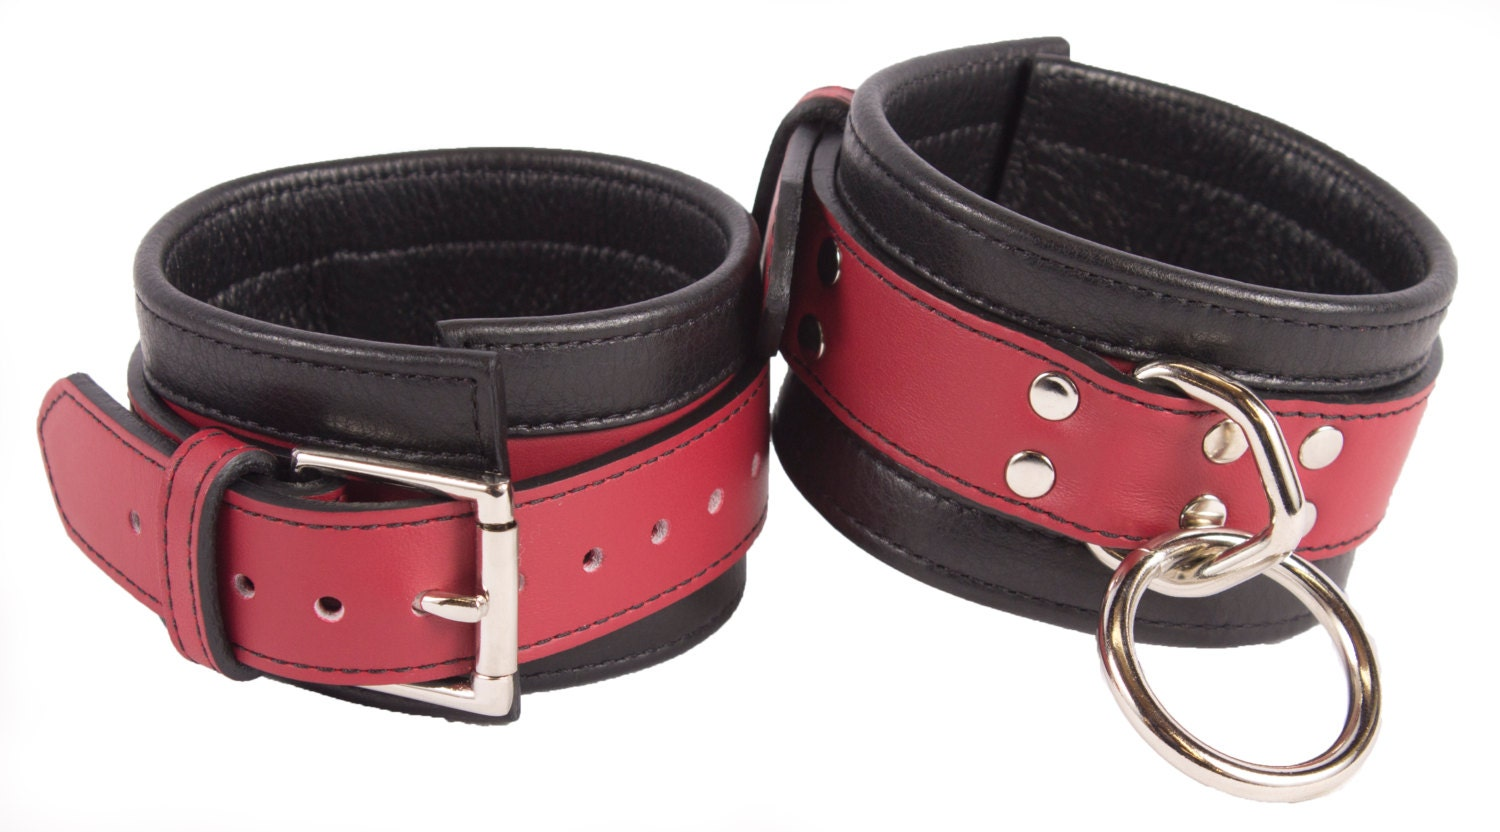 Red leather bondage restraints